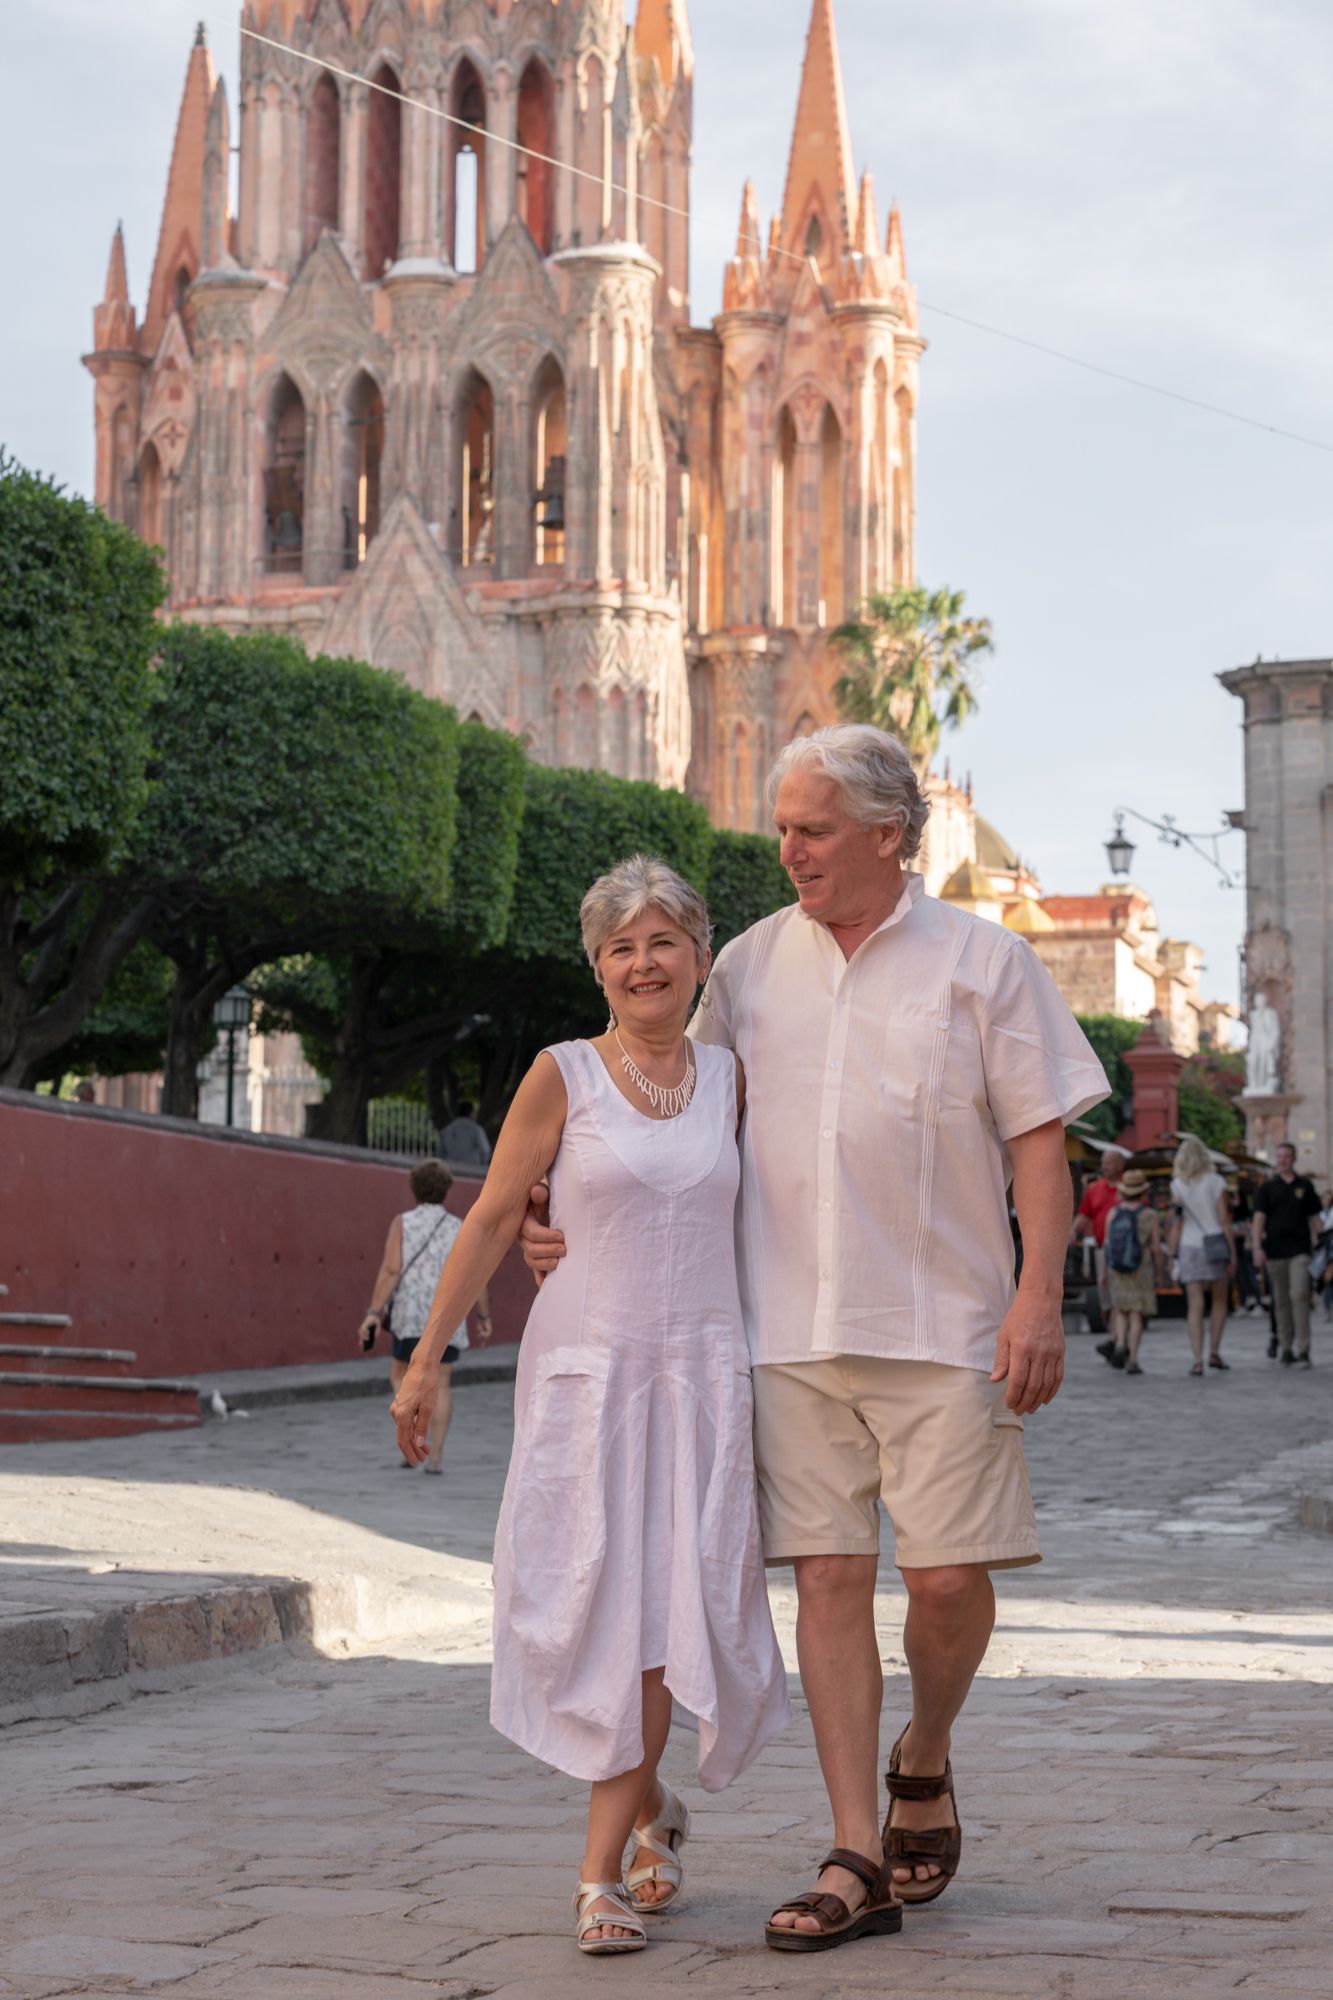 Photoshoot session in San Miguel de Allende with Suzanne and Leo-10.jpg